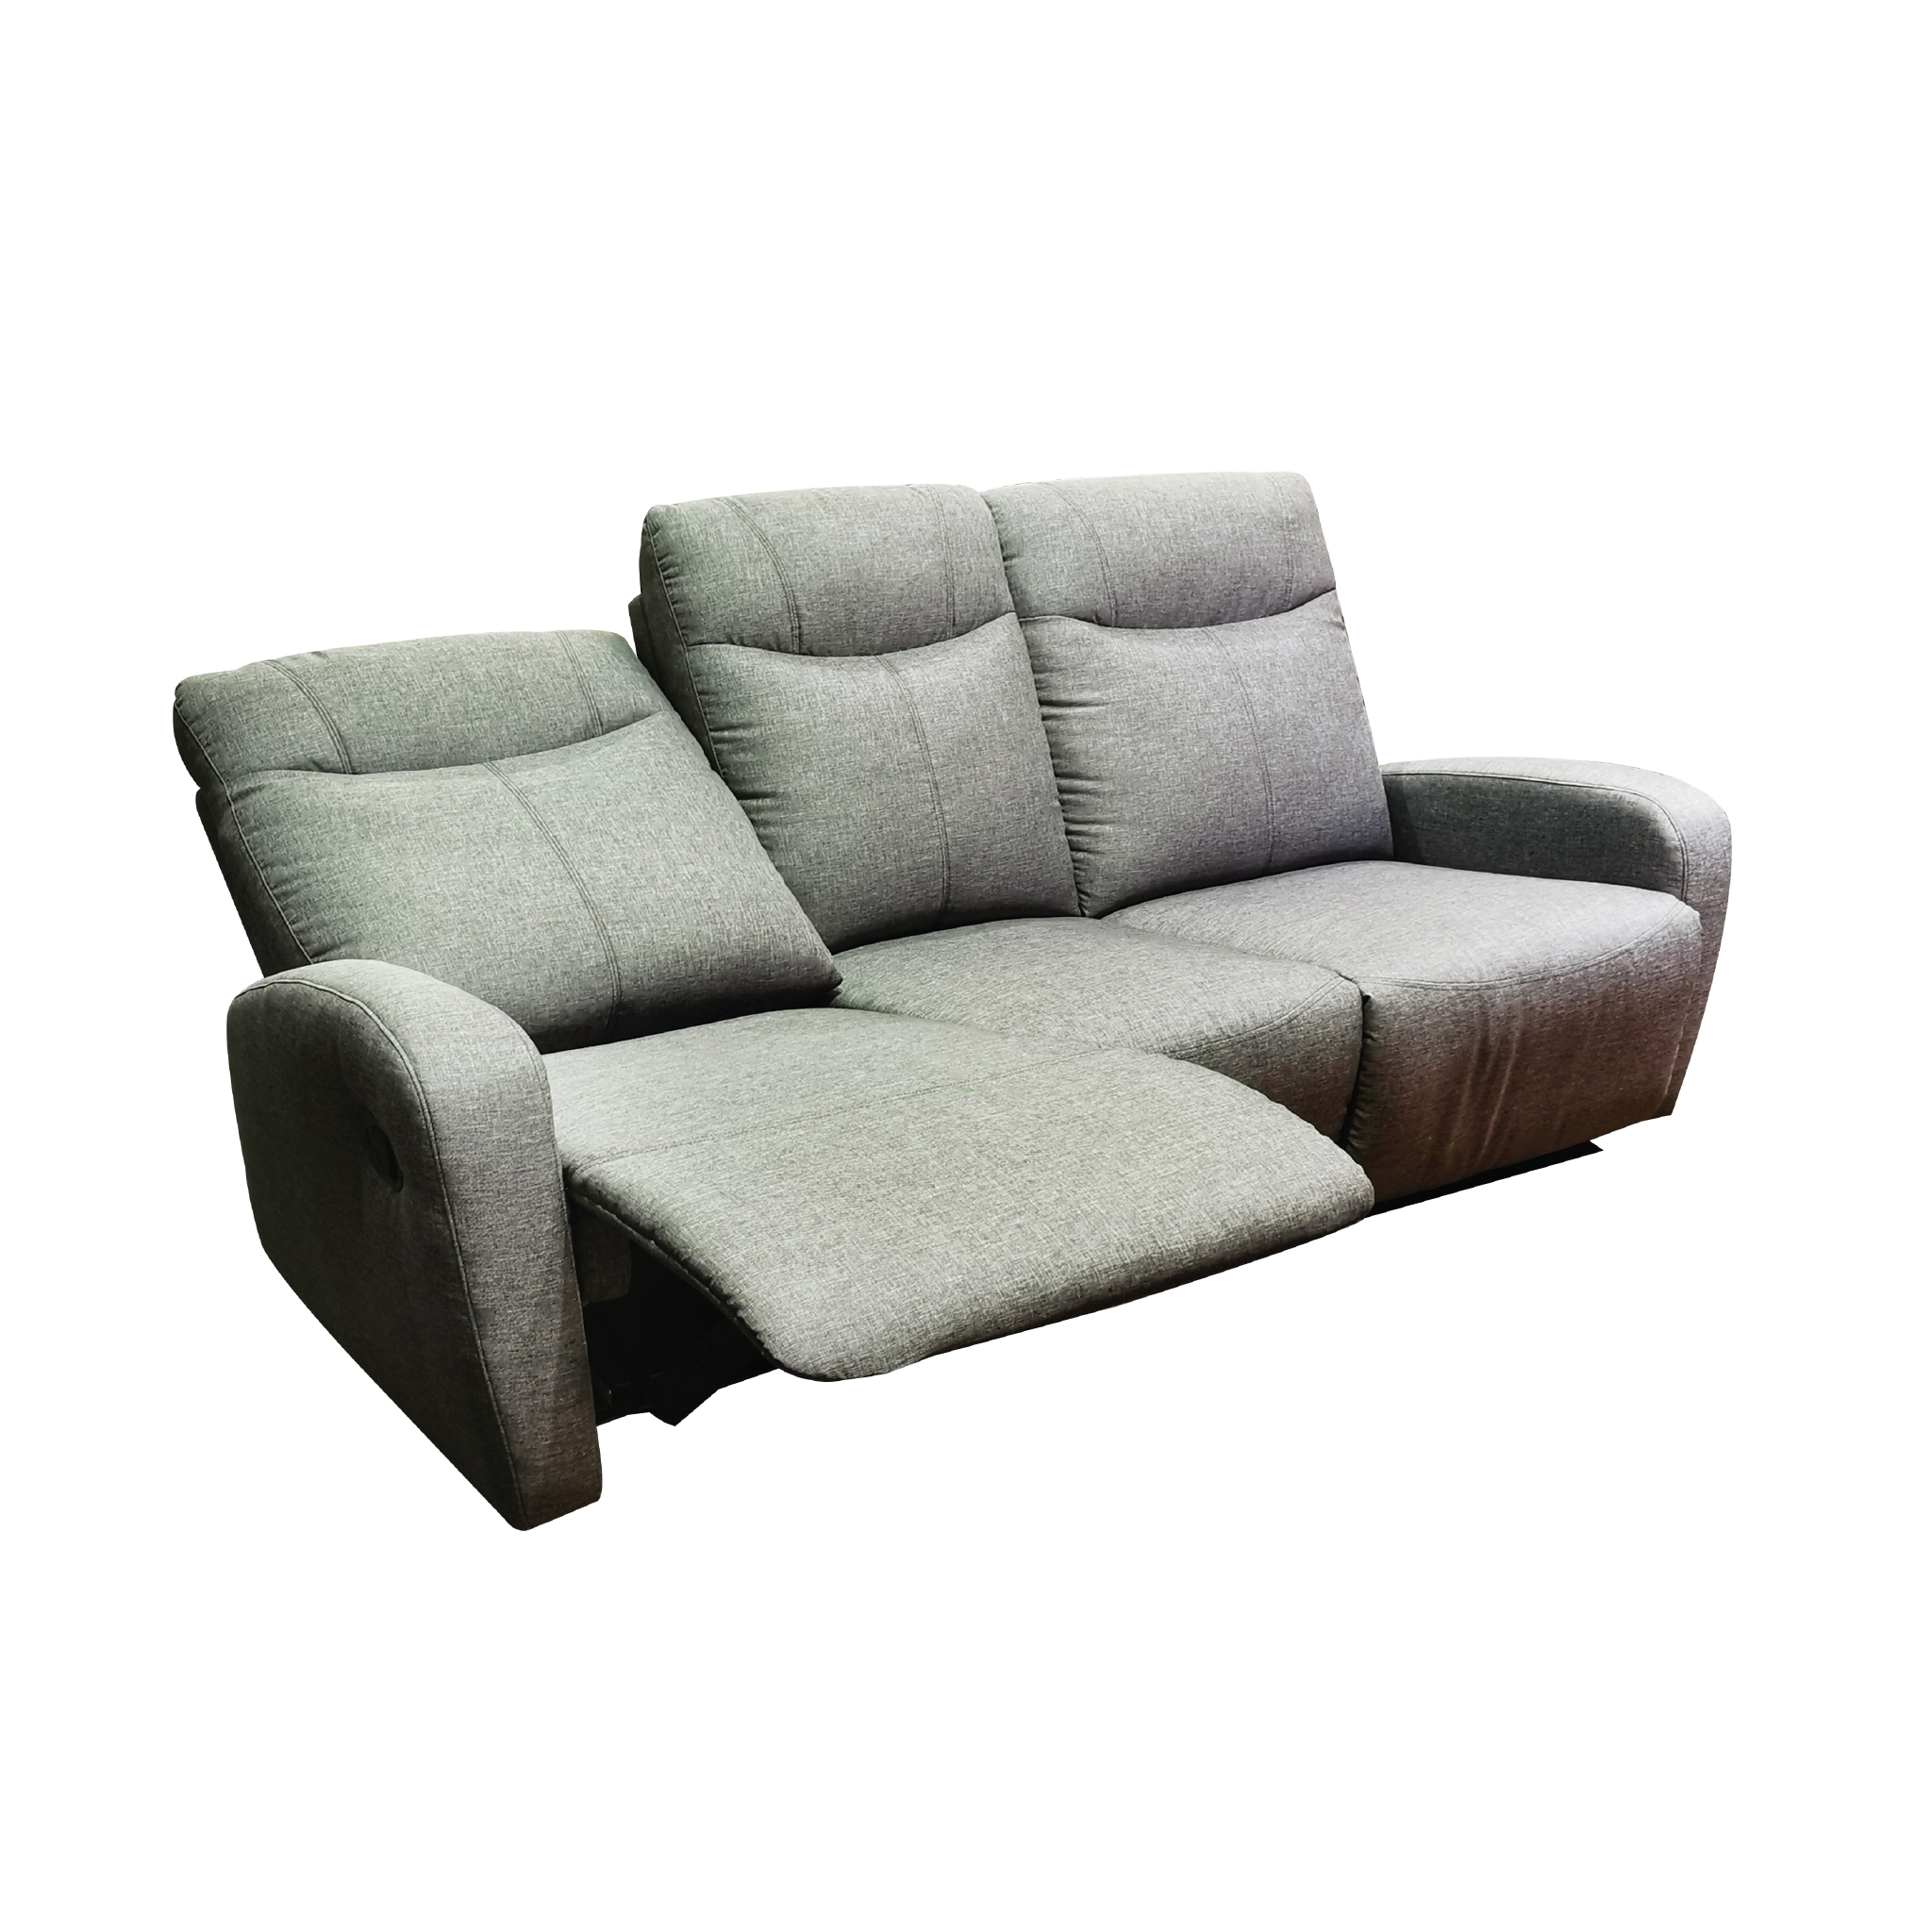 Hampton 3 Seater Recliner Sofa Fabric